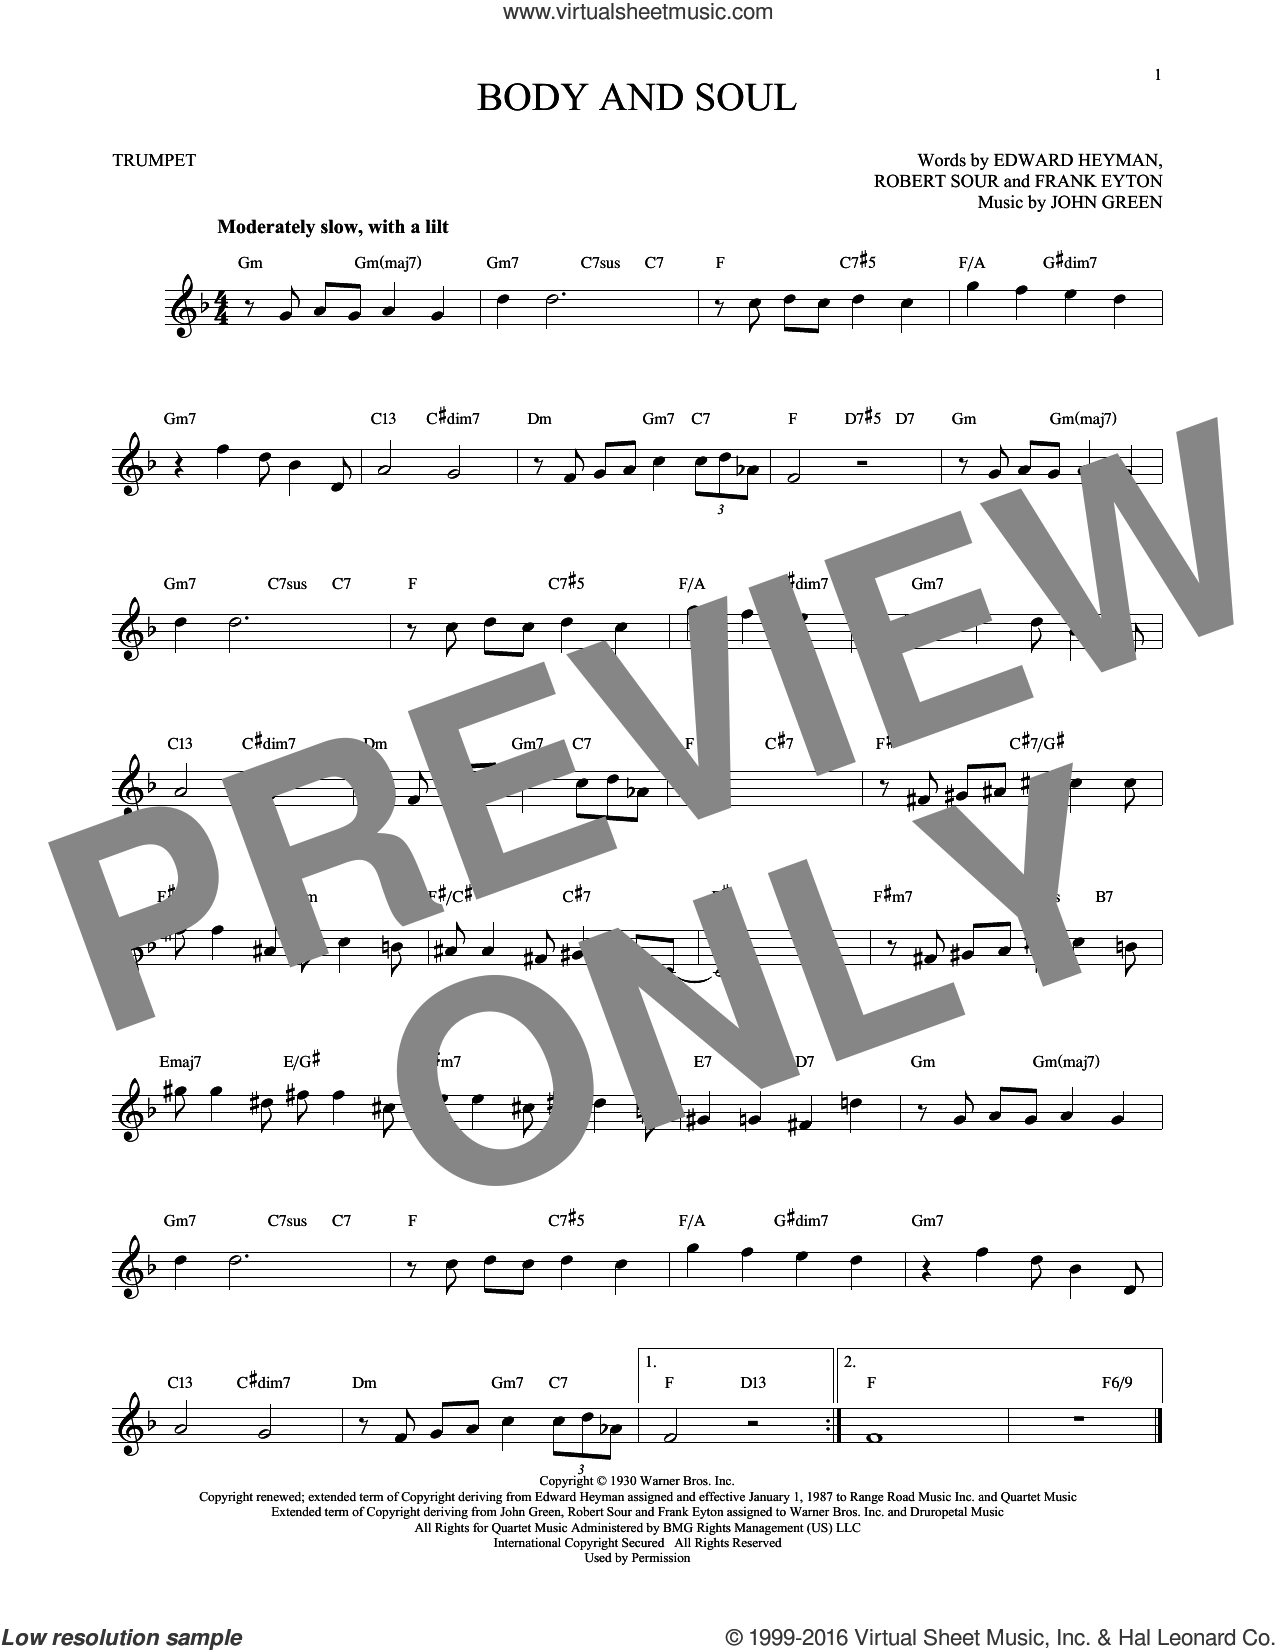 Body And Soul sheet music for trumpet solo by Edward Heyman, Tony Bennett & Amy Winehouse, Frank Eyton, Johnny Green and Robert Sour, intermediate skill level